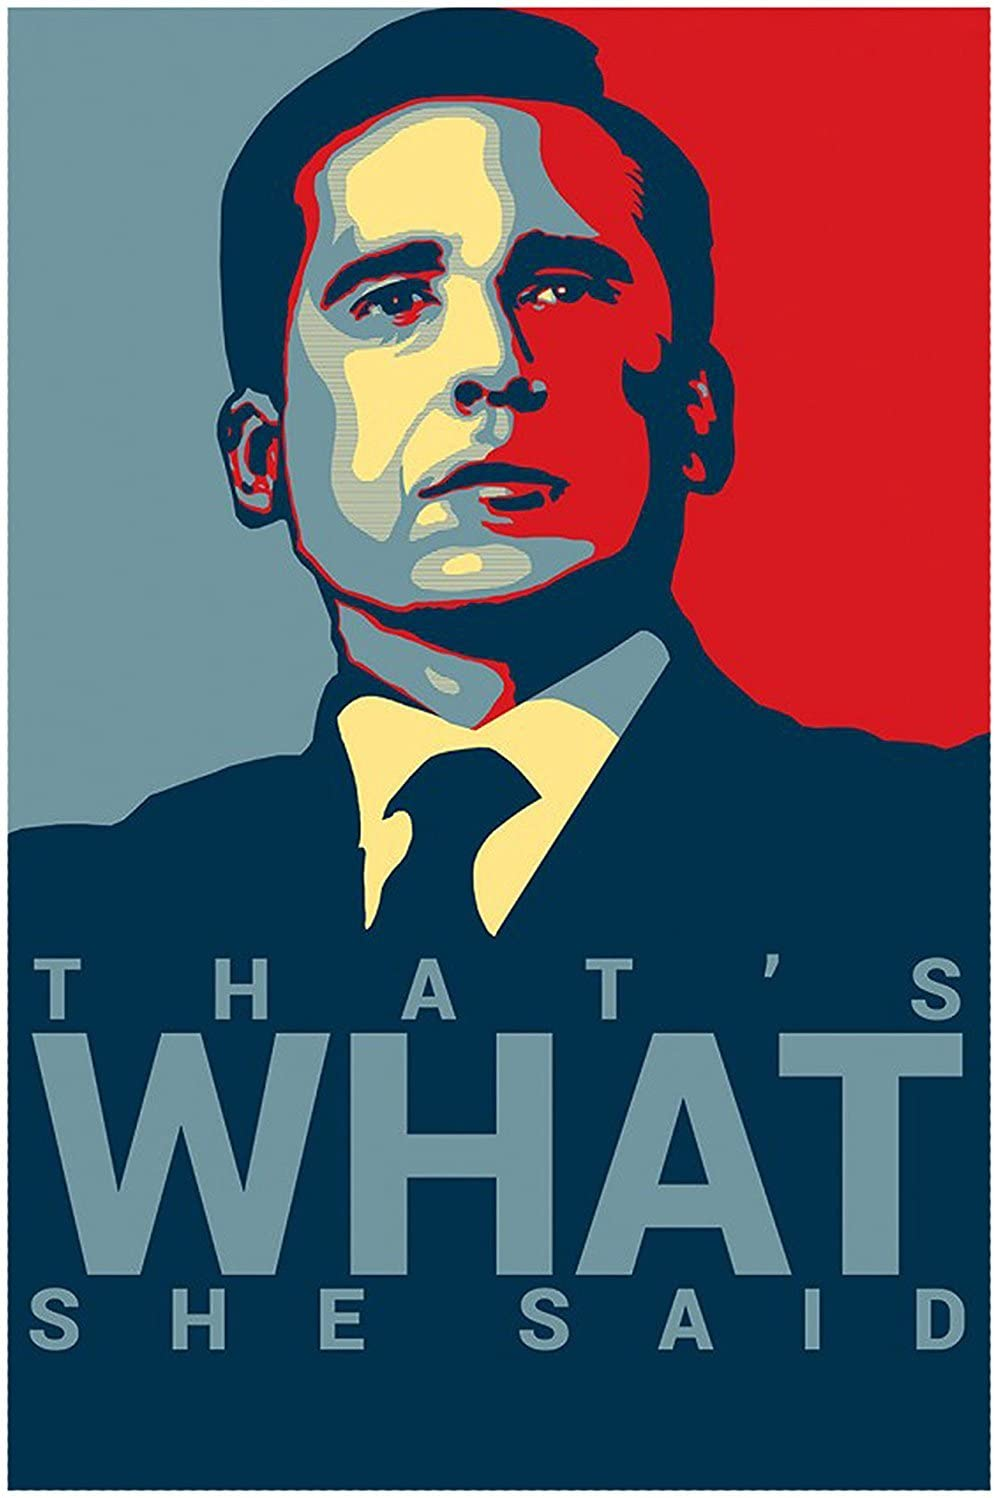 Michael Scott Quote That's What She Said Office Hope Poster Print(18.5 inch X 12.5 inch, Rolled)